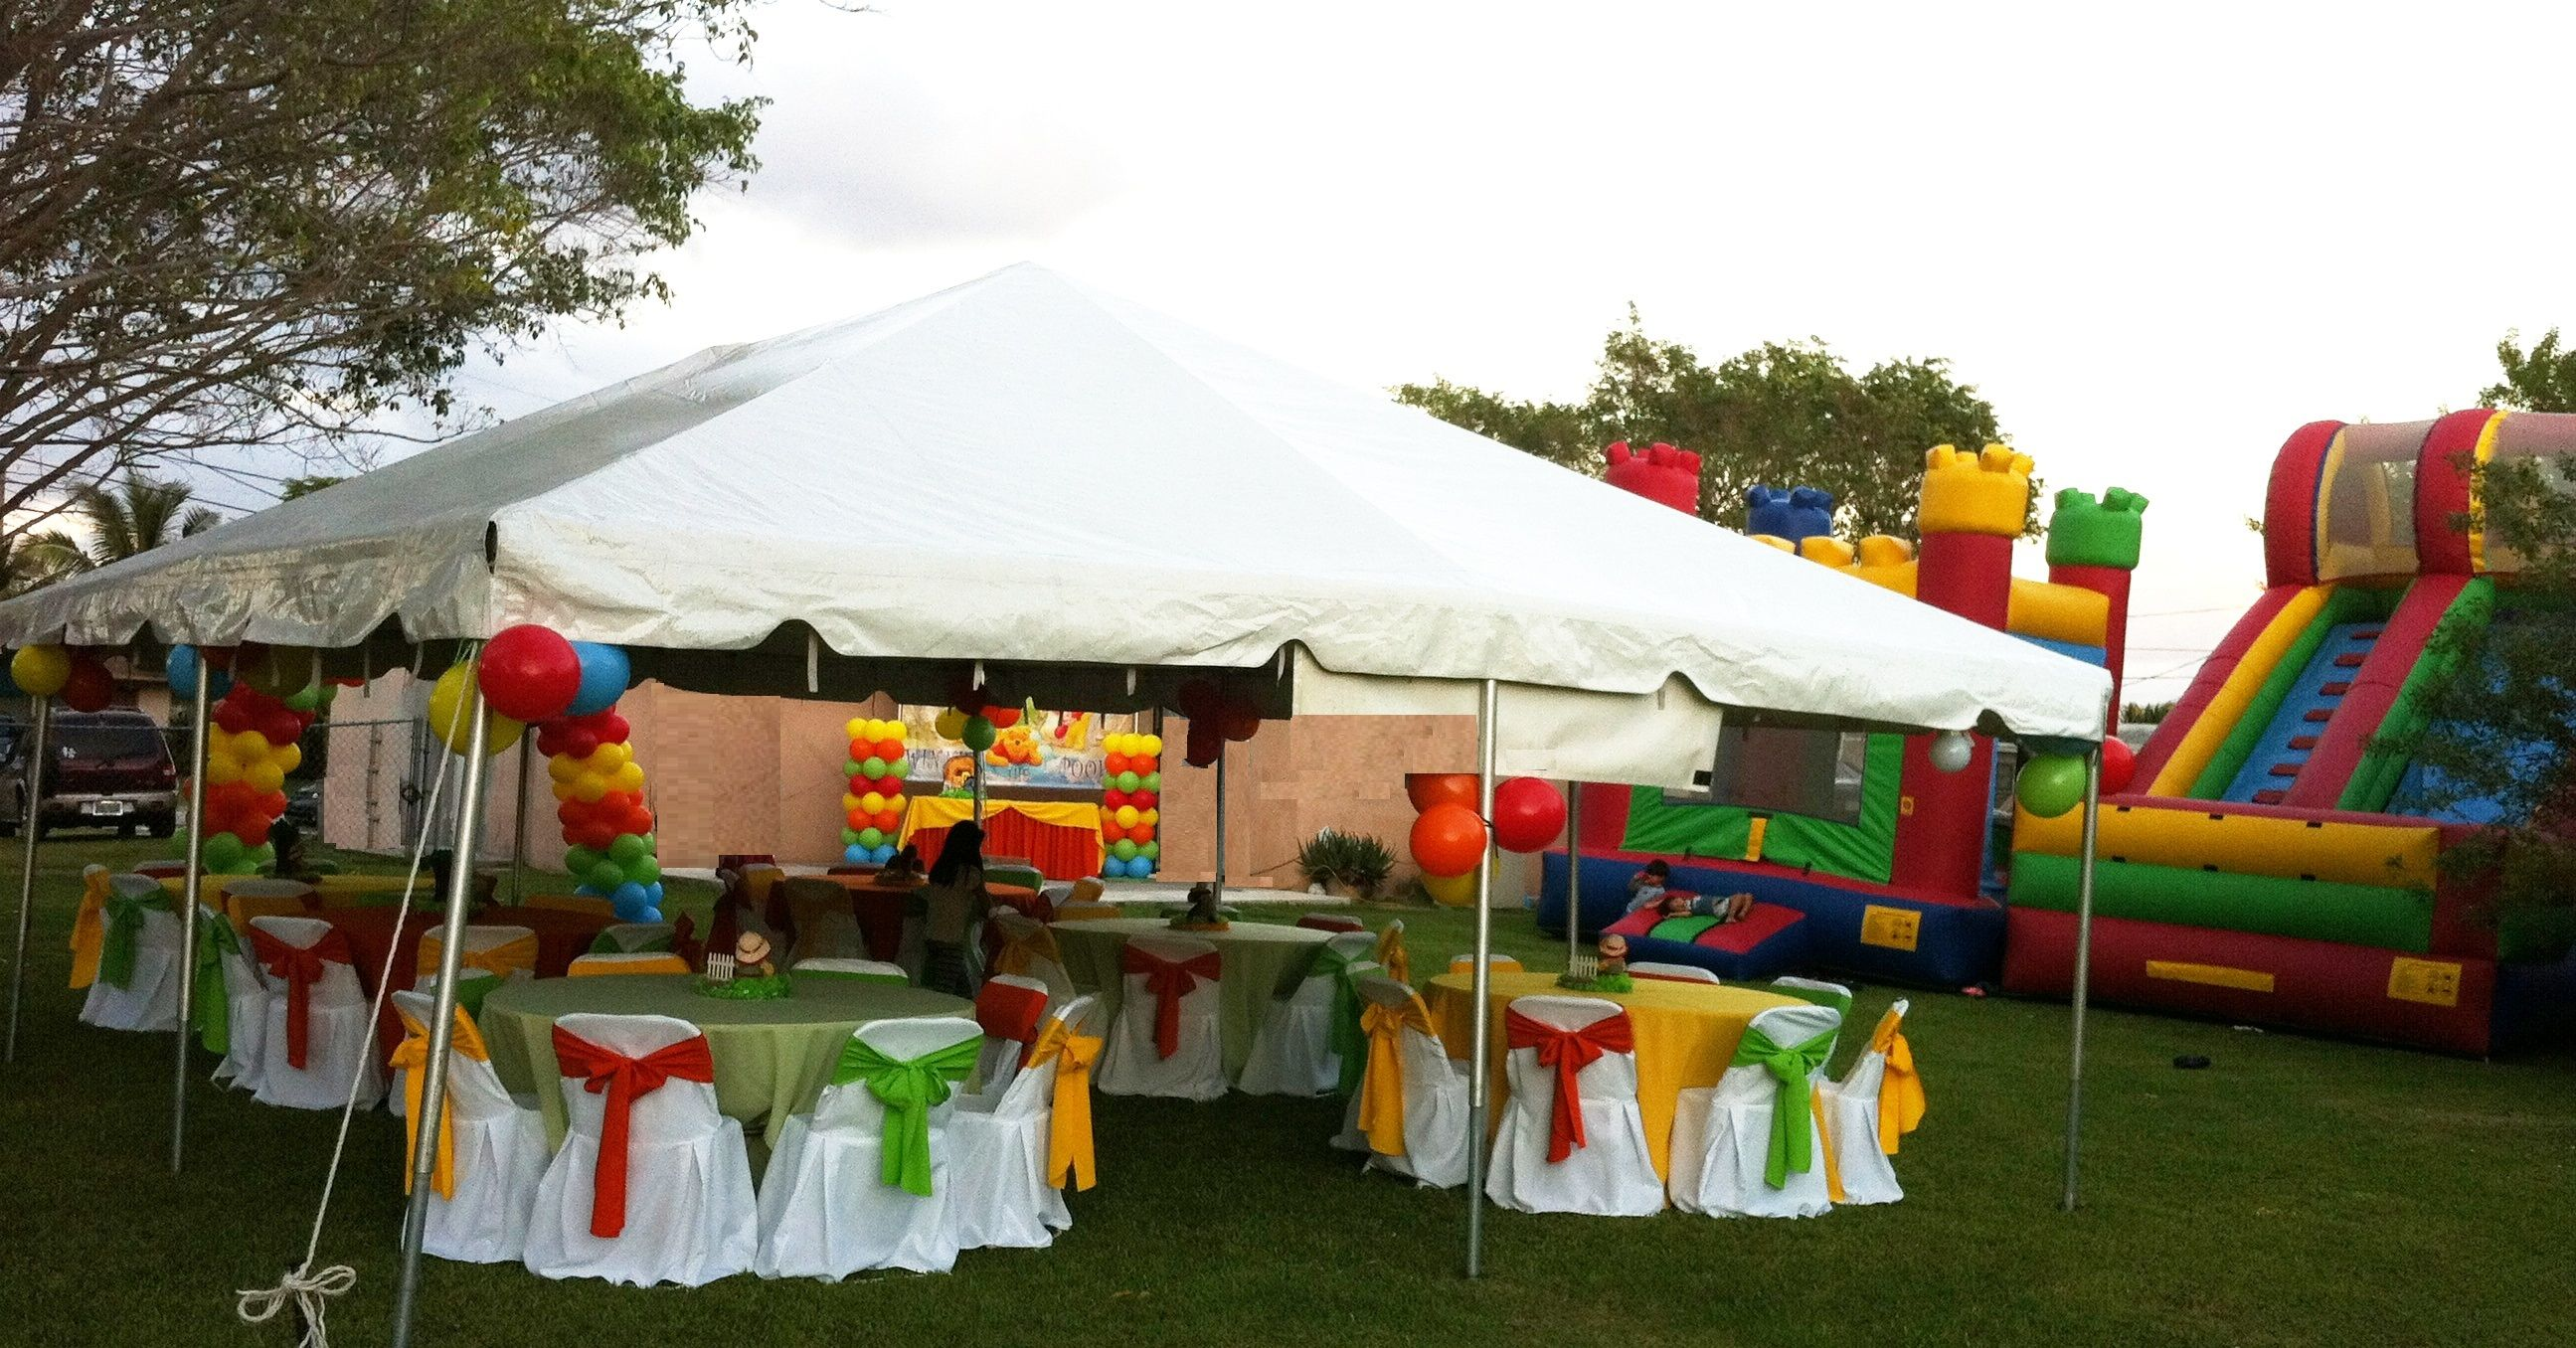 Tents 20x30 For Rent Ph 786 5863231 Tent Awning Monster Truck Party Party Rentals